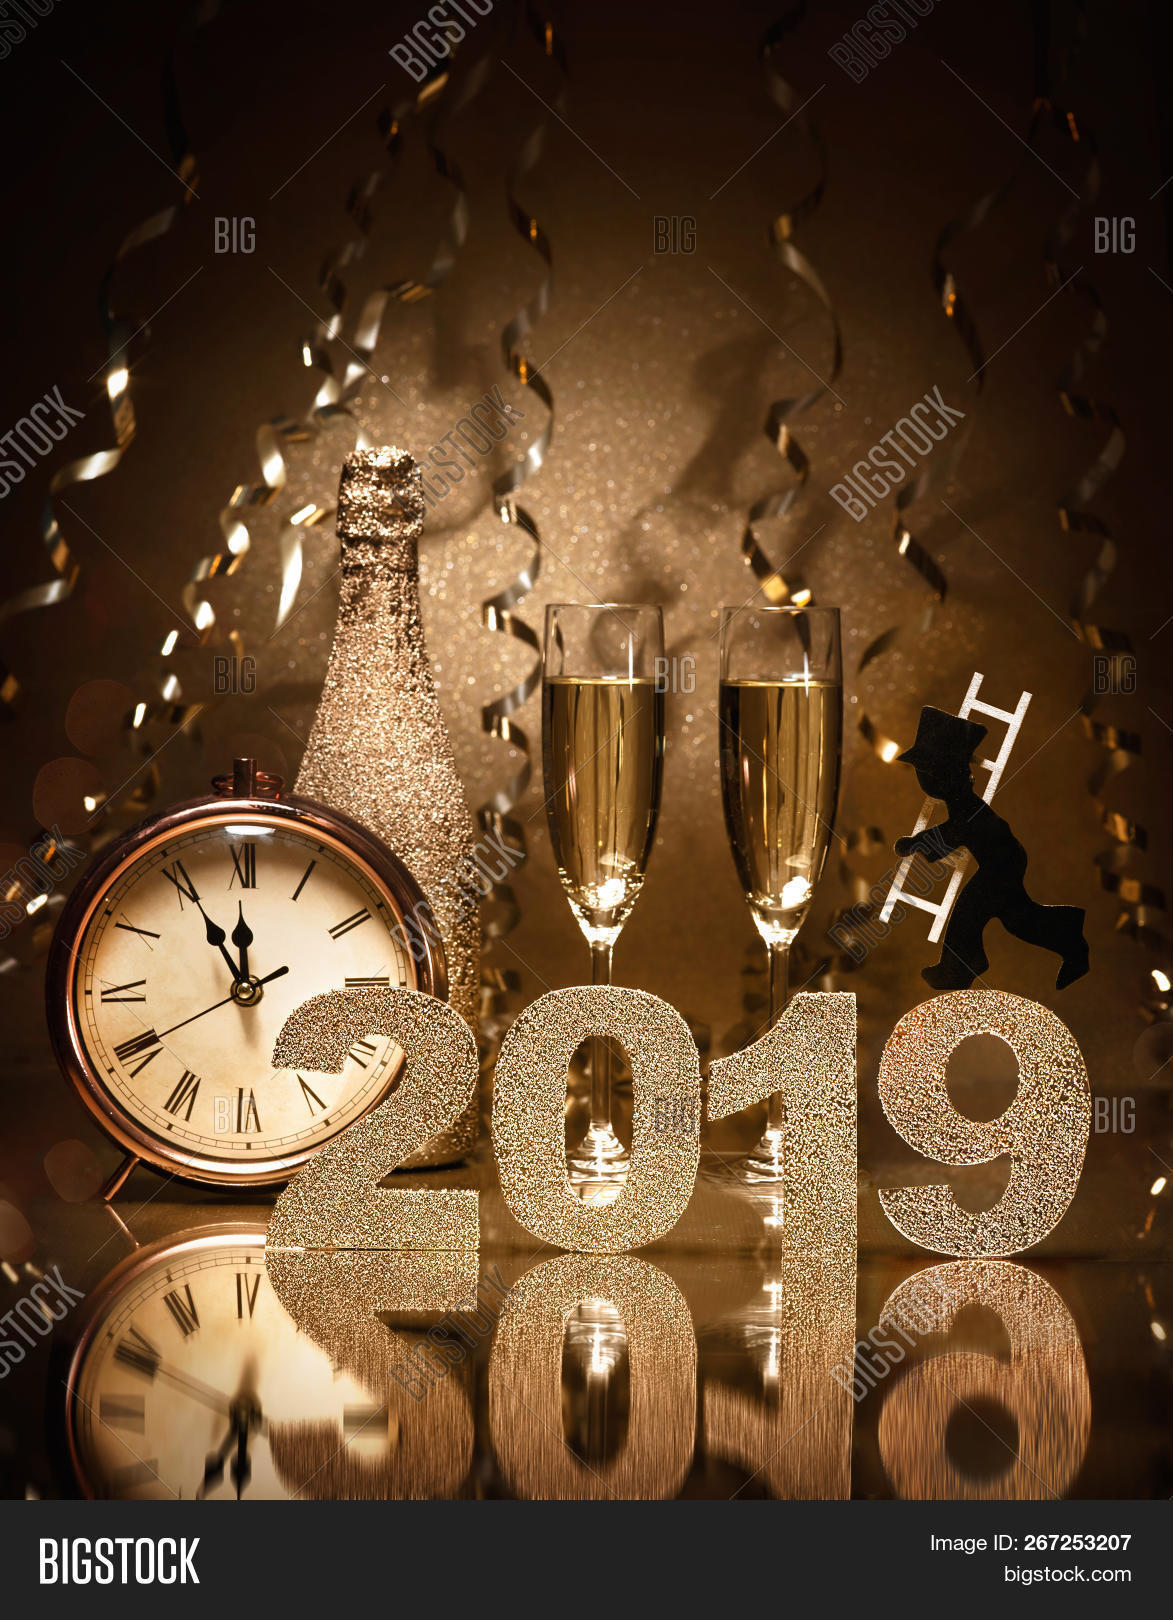 2019,background,bottle,bubbles,bubbly,card,celebrate,celebration,champagne,cheers,chimney sweep,clock,concept,copy space,decoration,drink,eve,evening,event,festive,festivity,flutes,glass,gold,golden,good luck,greeting,happy,holiday,invitation,invite,light,lucky charm,midnight,new,new year,number,numerals,pair,party,silvester,sparkle,sparklers,sparkling,streamer,sweep,toast,two,wine,years